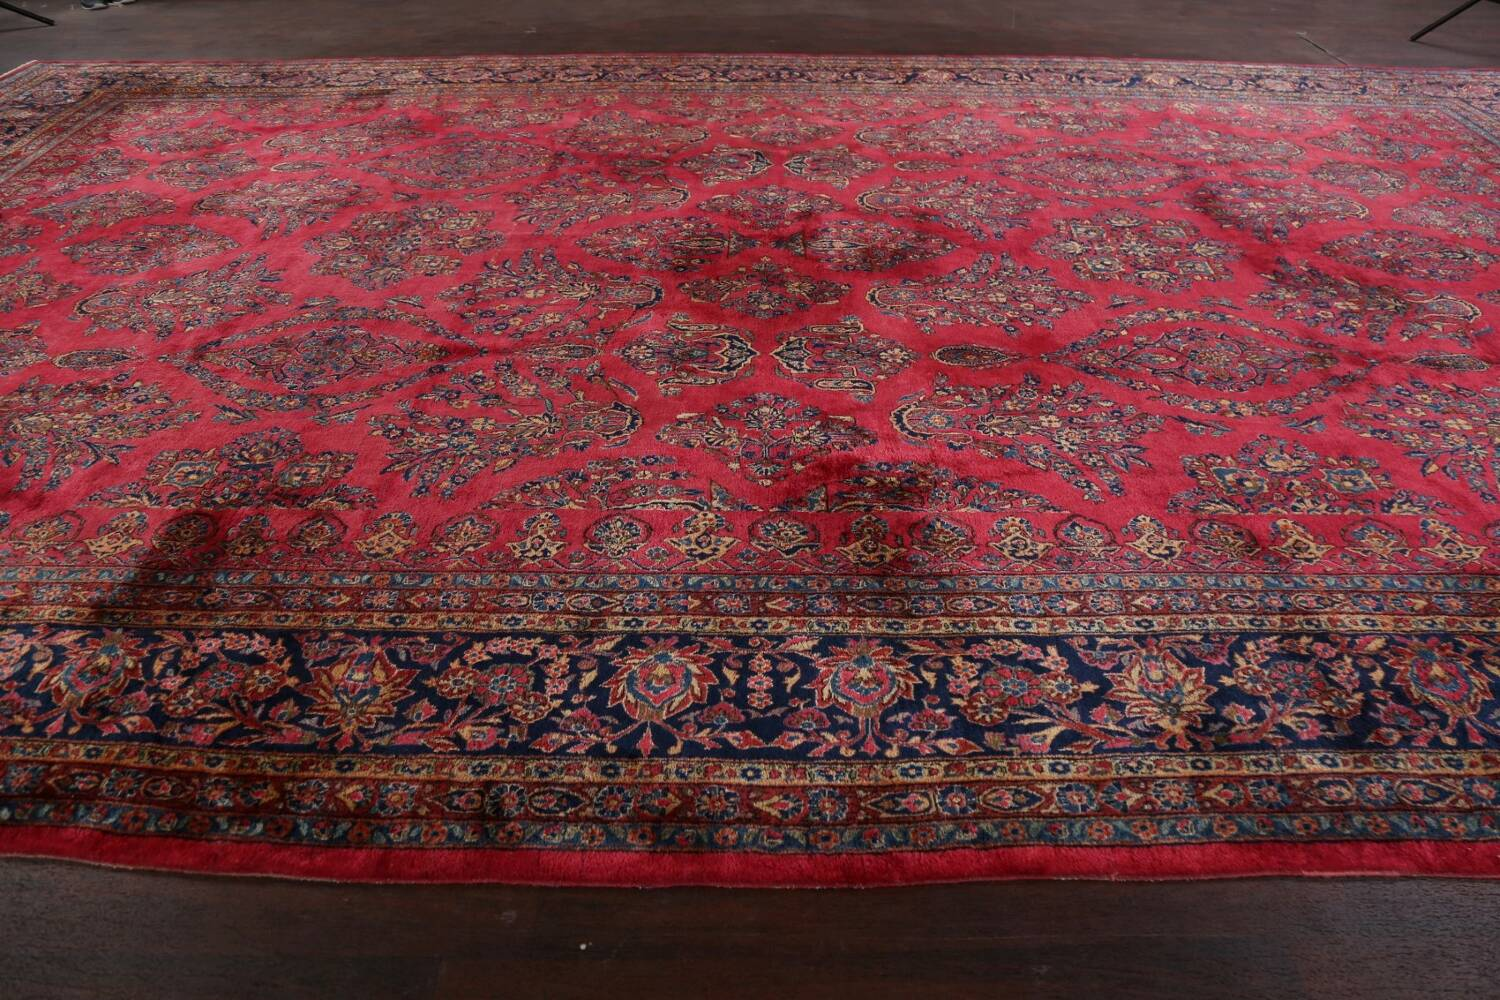 Antique 100% Vegetable Dye Kashan Persian Area Rug 12x20 image 15